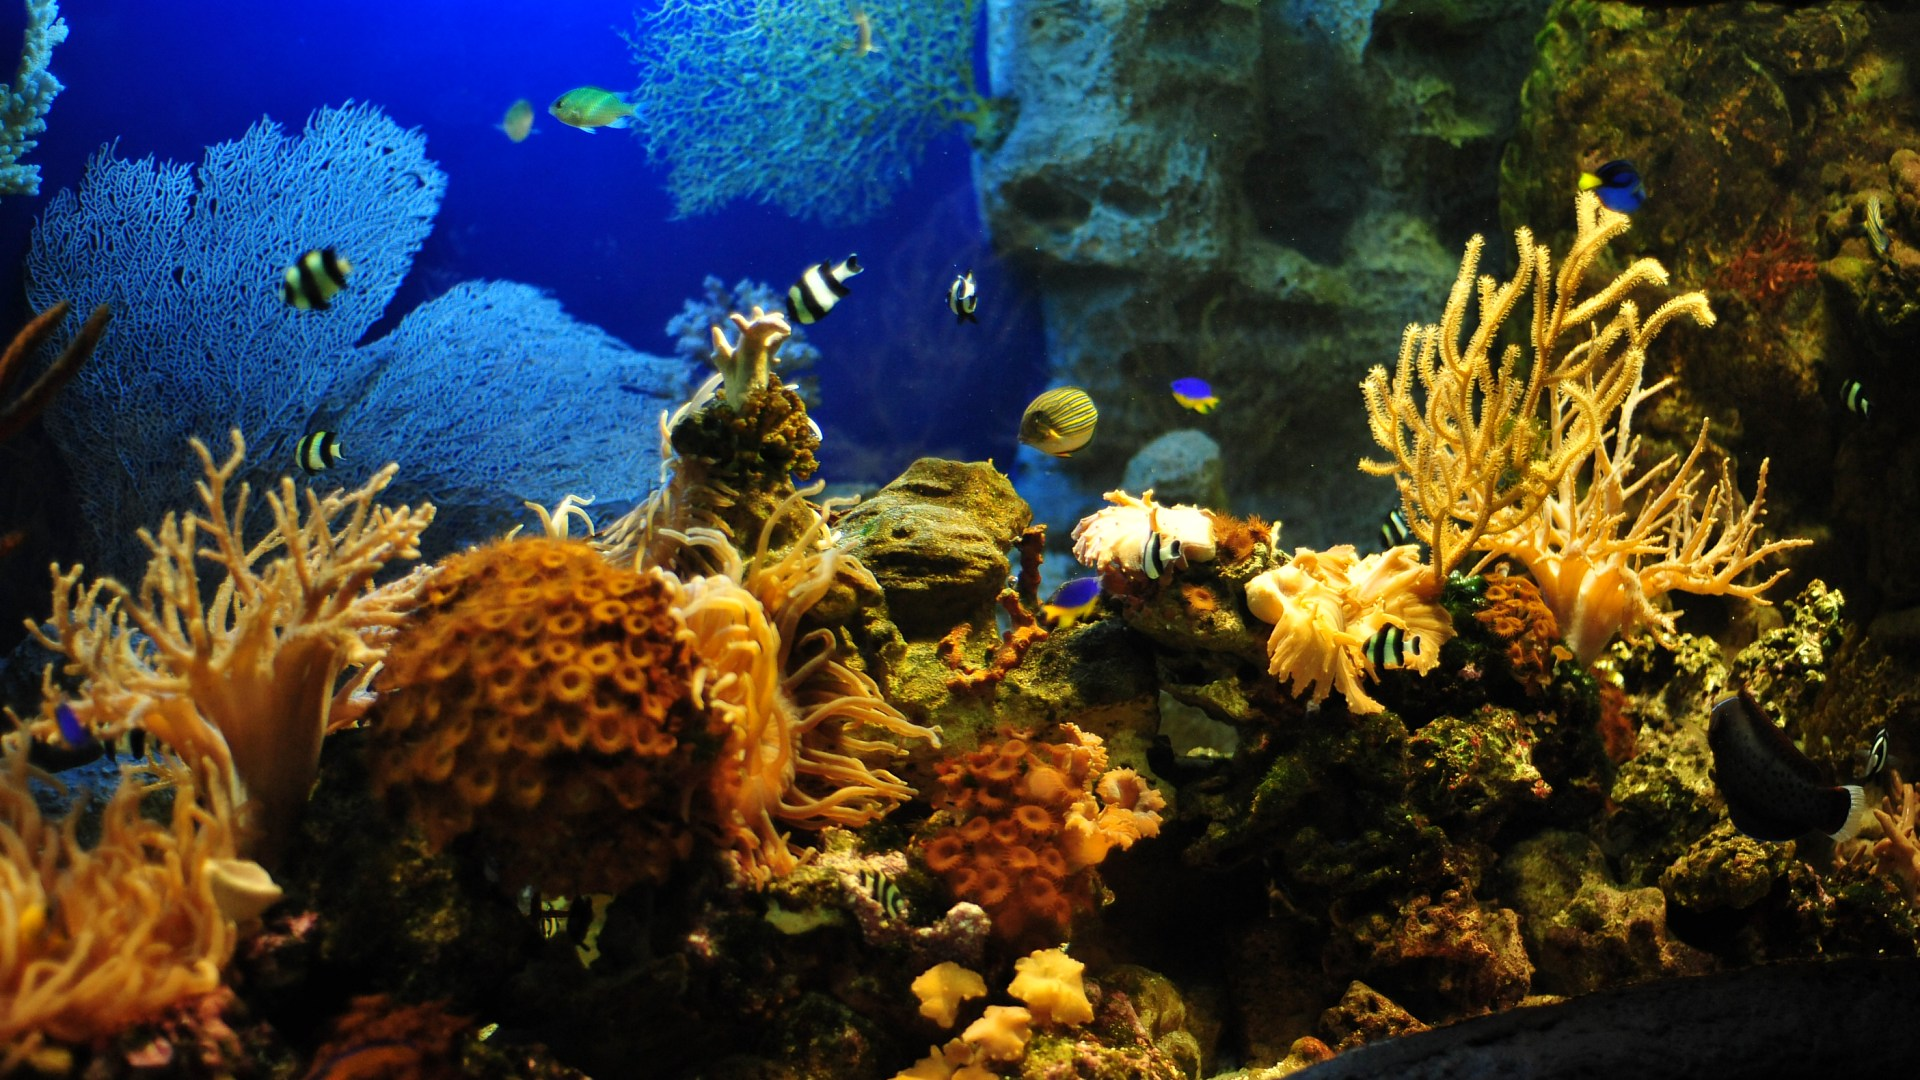 aquarium hd wallpaper - photo #13